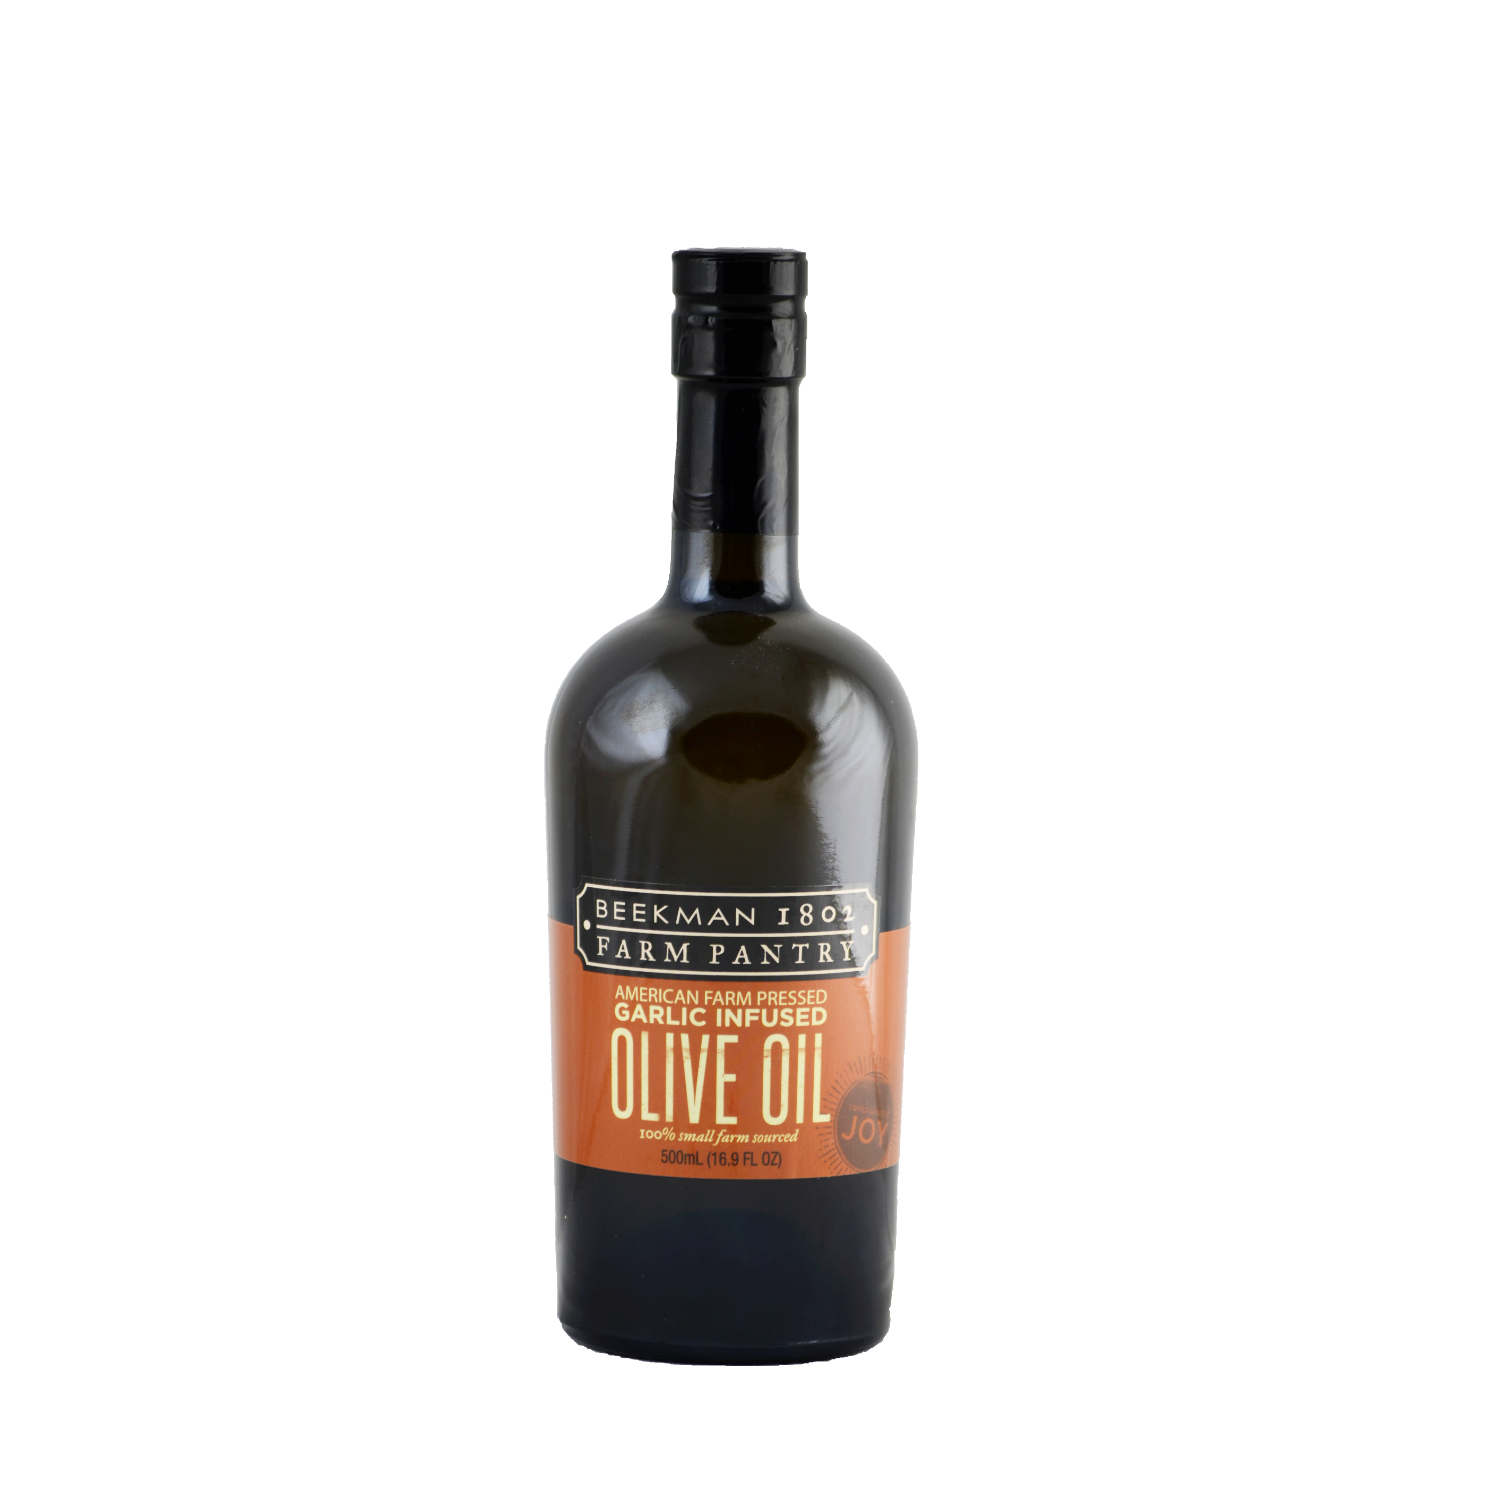 Farm Pantry Garlic Infused Olive Oil - 100% American Olives